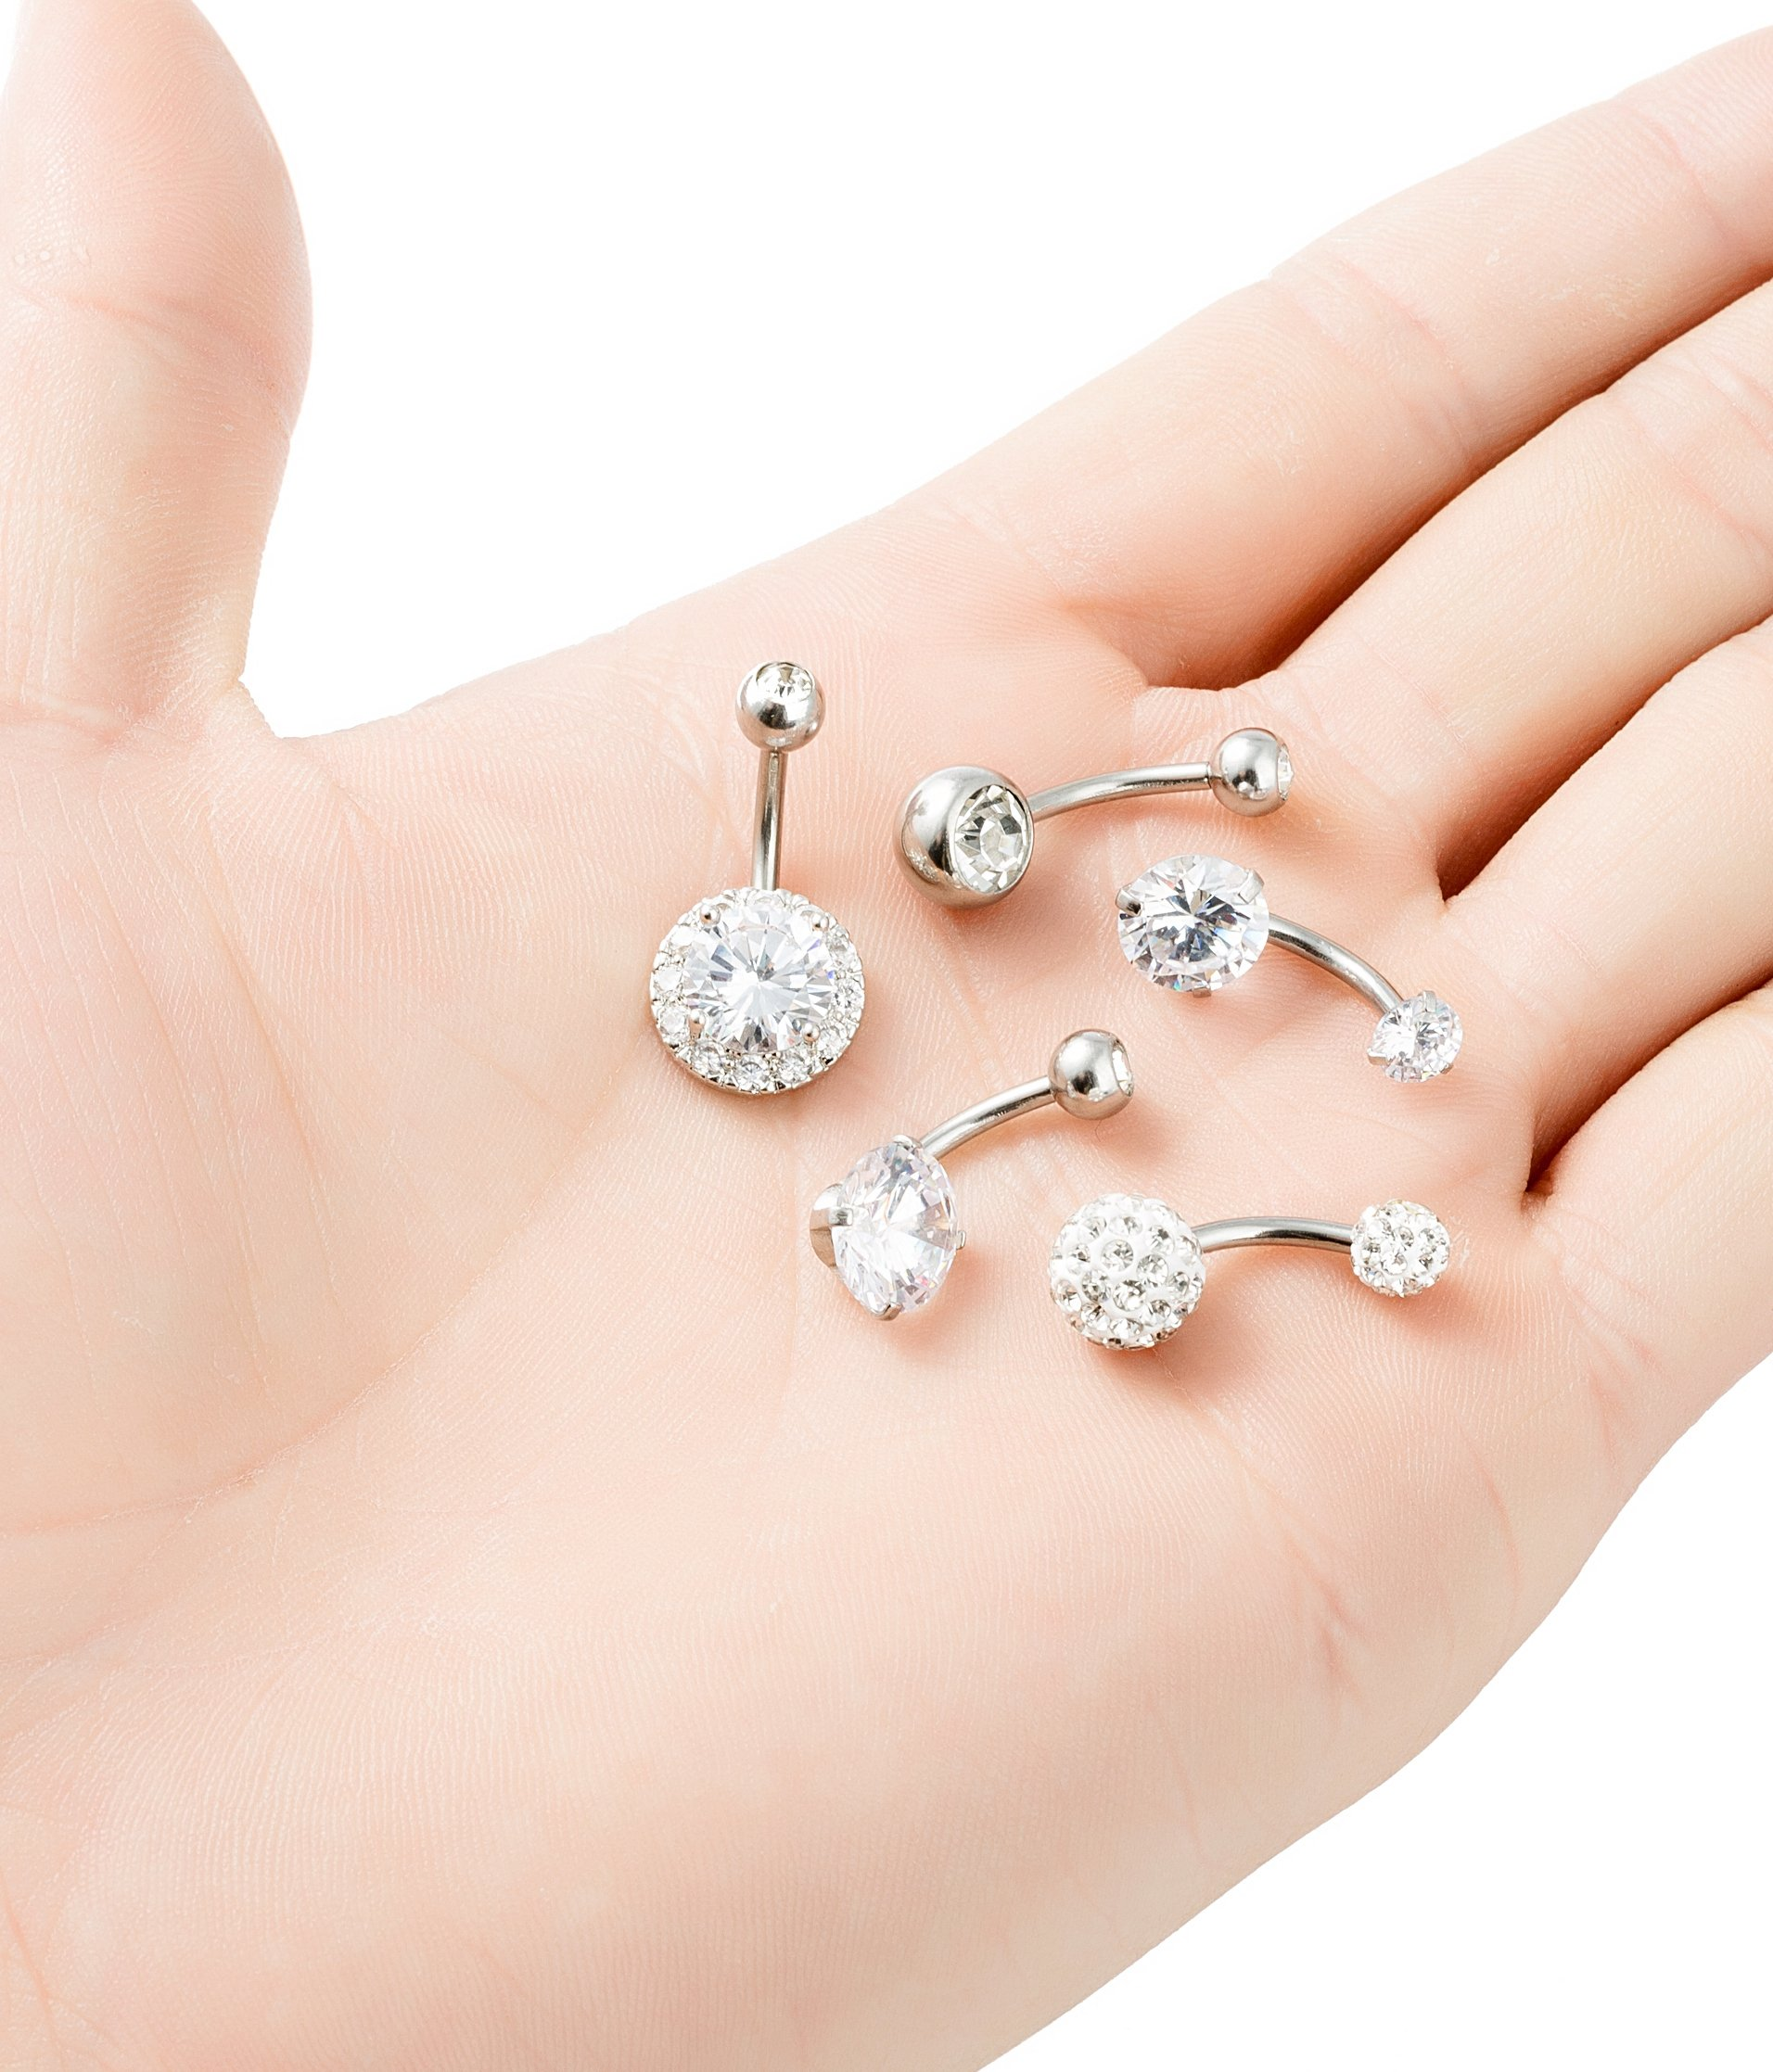 REVOLIA 5Pcs 14G Stainless Steel Belly Button Rings for Women Girls Navel Rings CZ Body Piercing S by REVOLIA (Image #7)